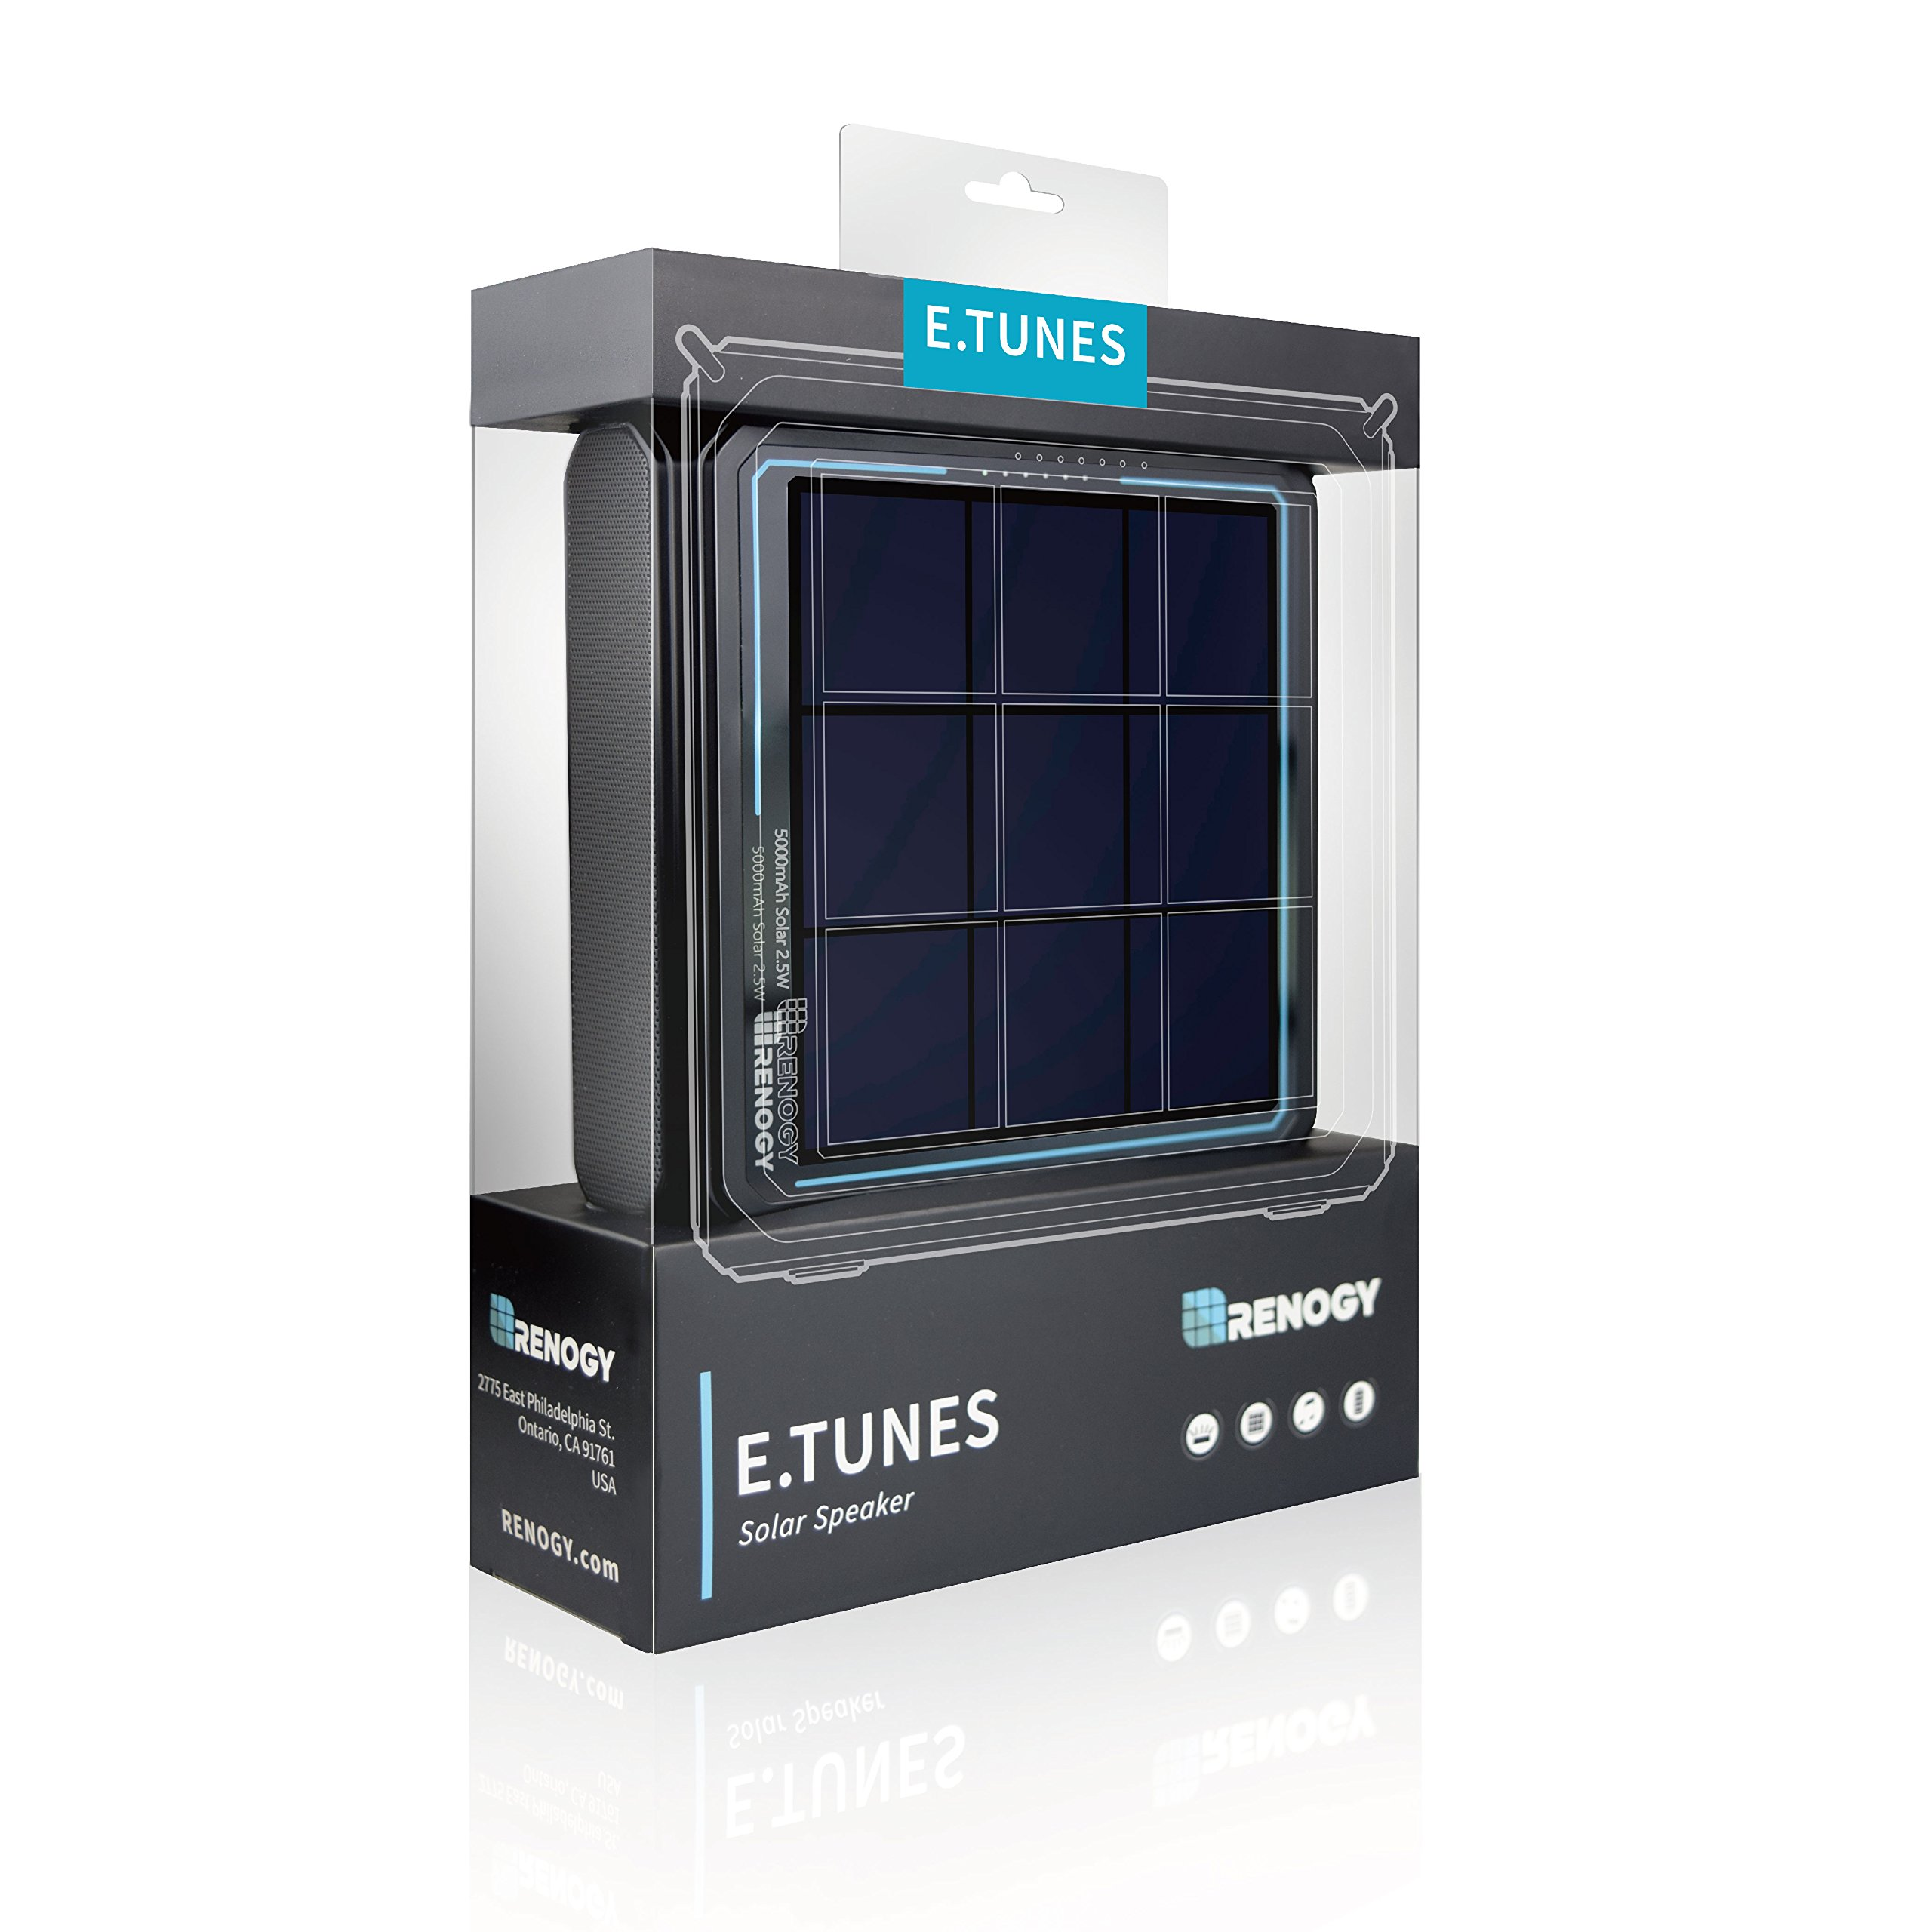 Renogy - E.TUNES - Portable Solar Power Wireless Bluetooth Outdoor Speaker for Beach, Poolside, Biking, and Camping